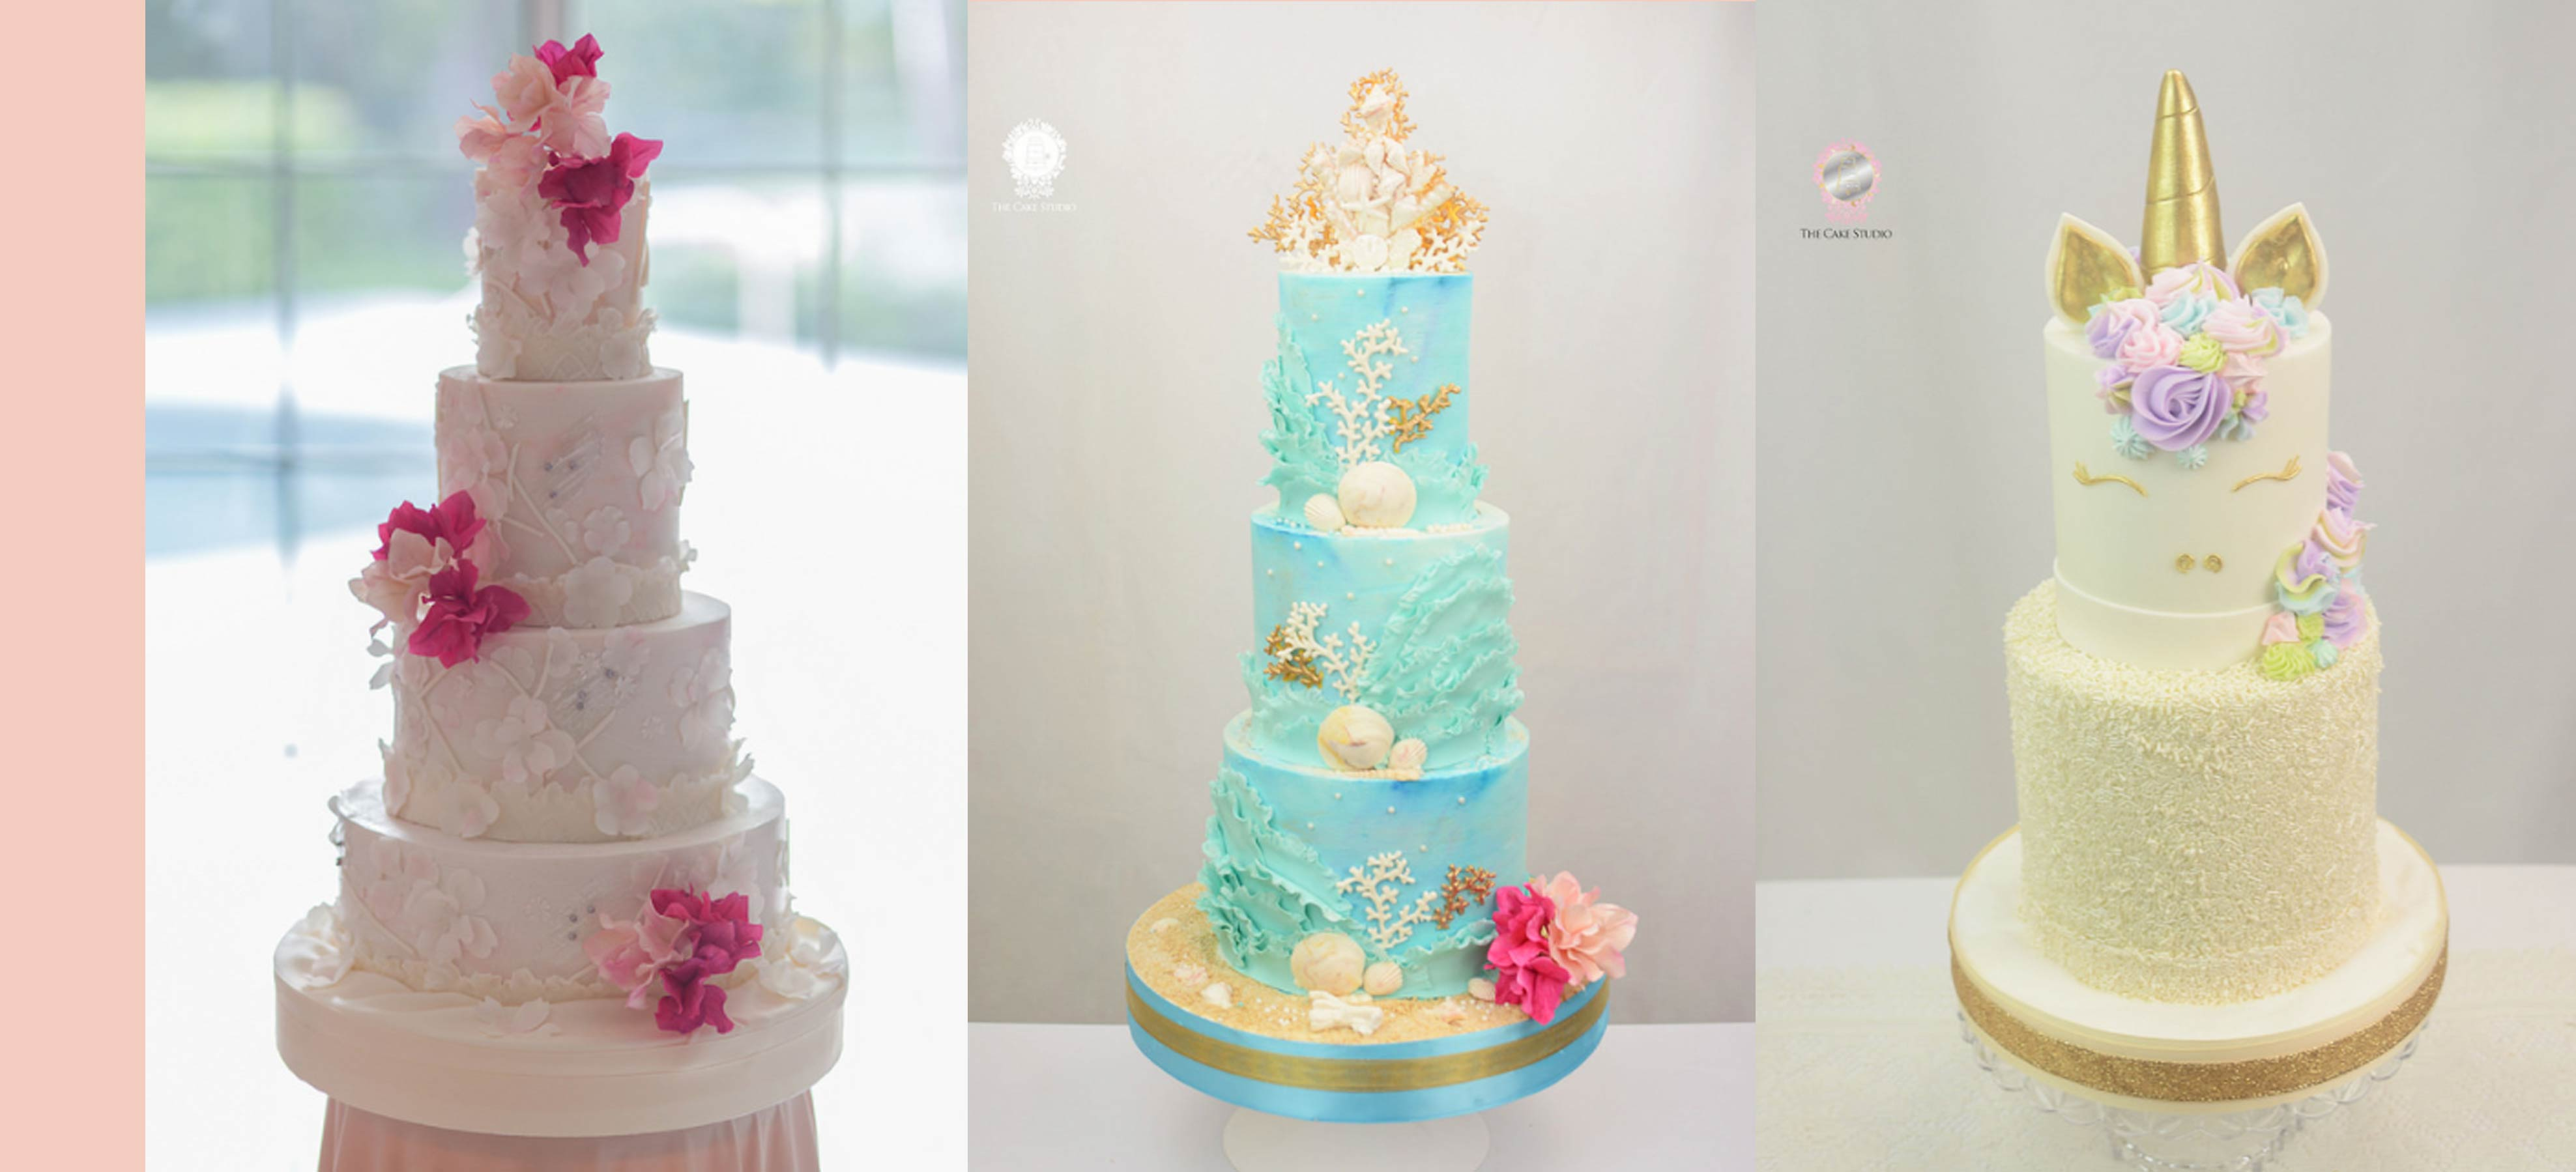 THE CAYMAN ISLANDS\' QUEEN OF CAKES: LORI-ANN FOLEY, THE CAKE STUDIO